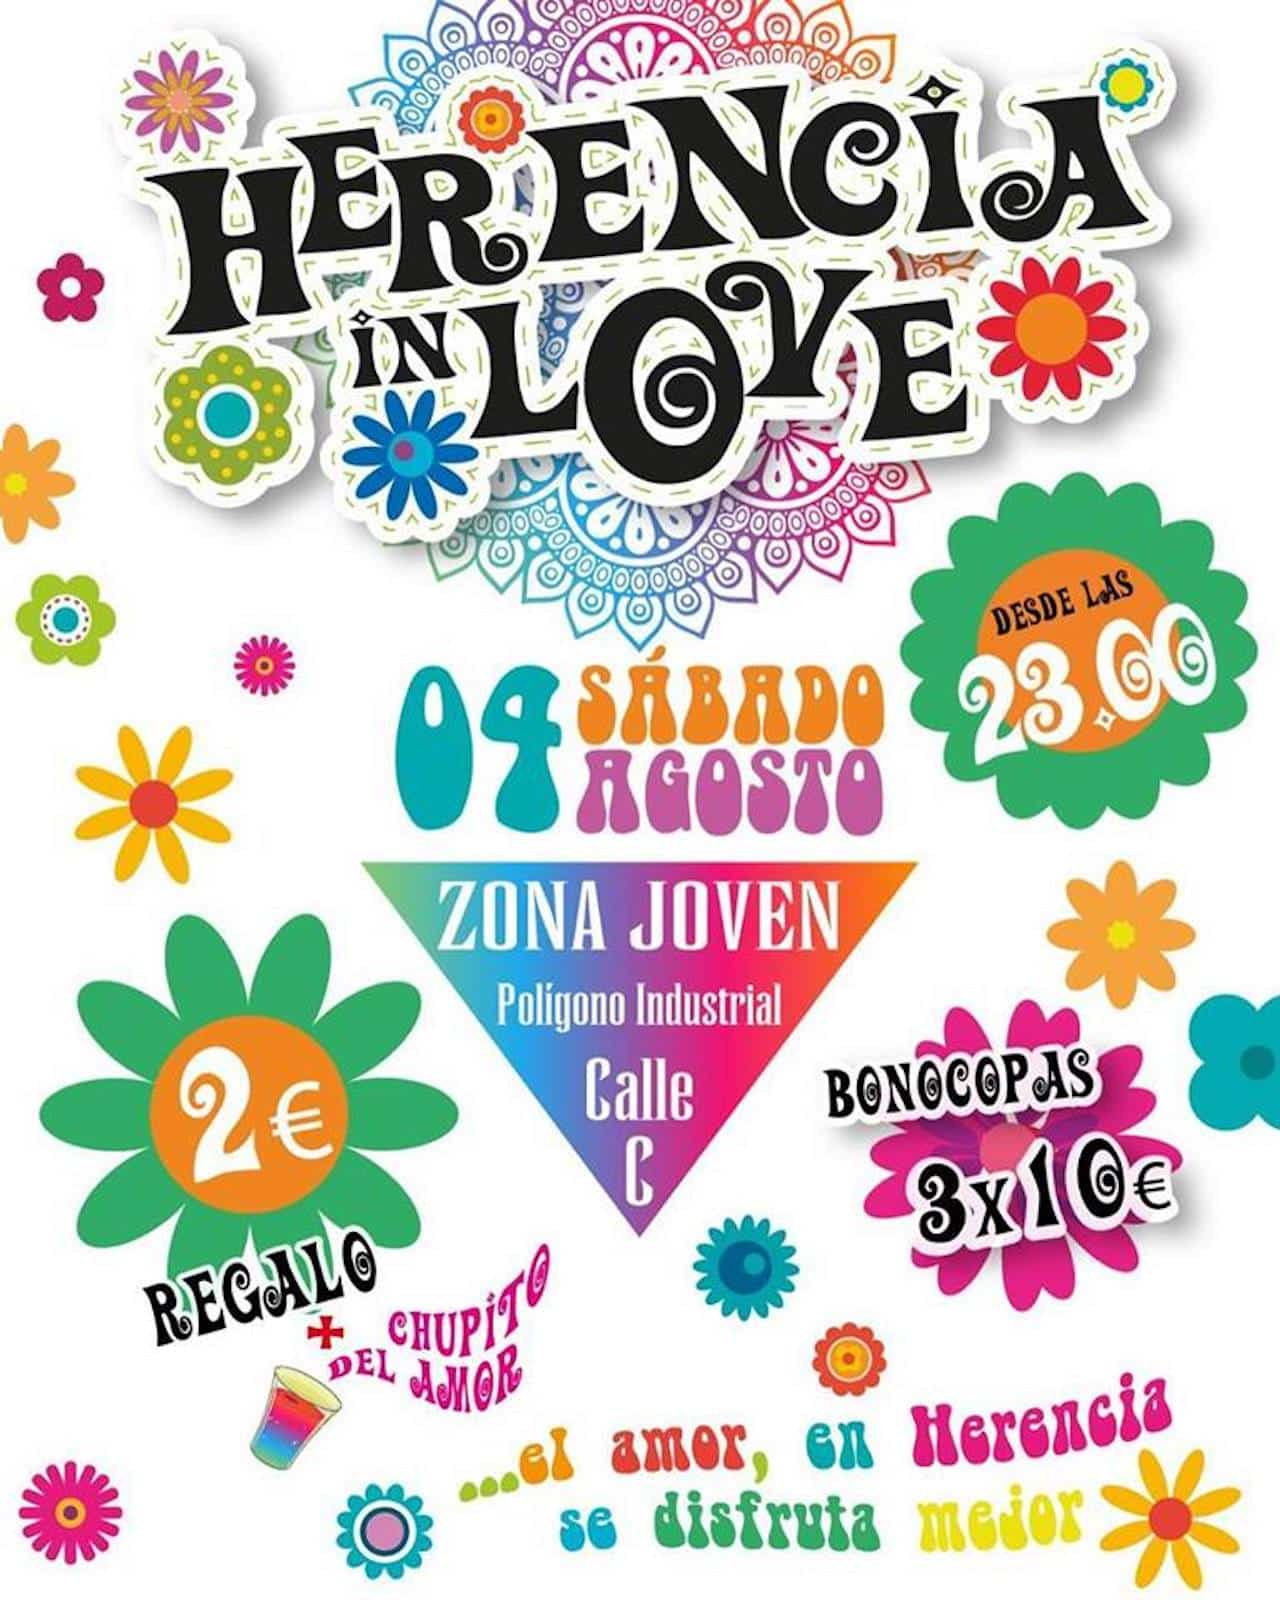 "fiesta botellon herencia in love - Fiesta ""Herencia in love"" este fin de semana en Herencia"